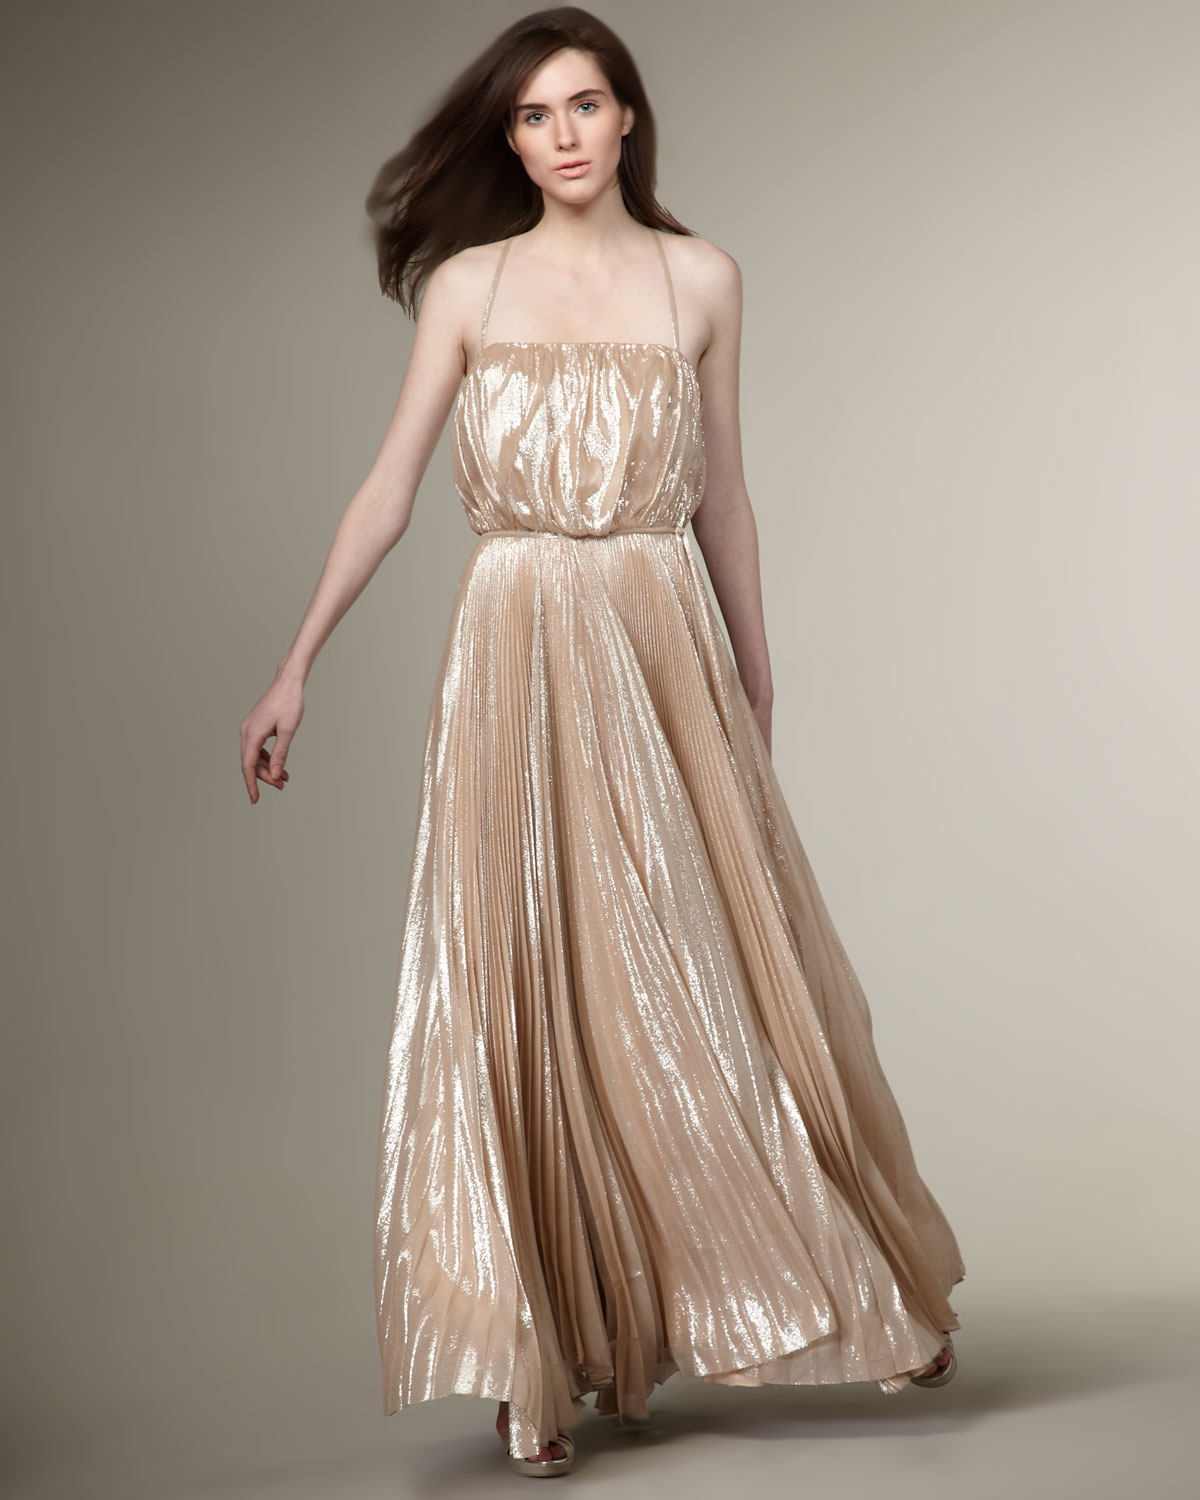 Lyst - Halston Pleated Gown in Pink